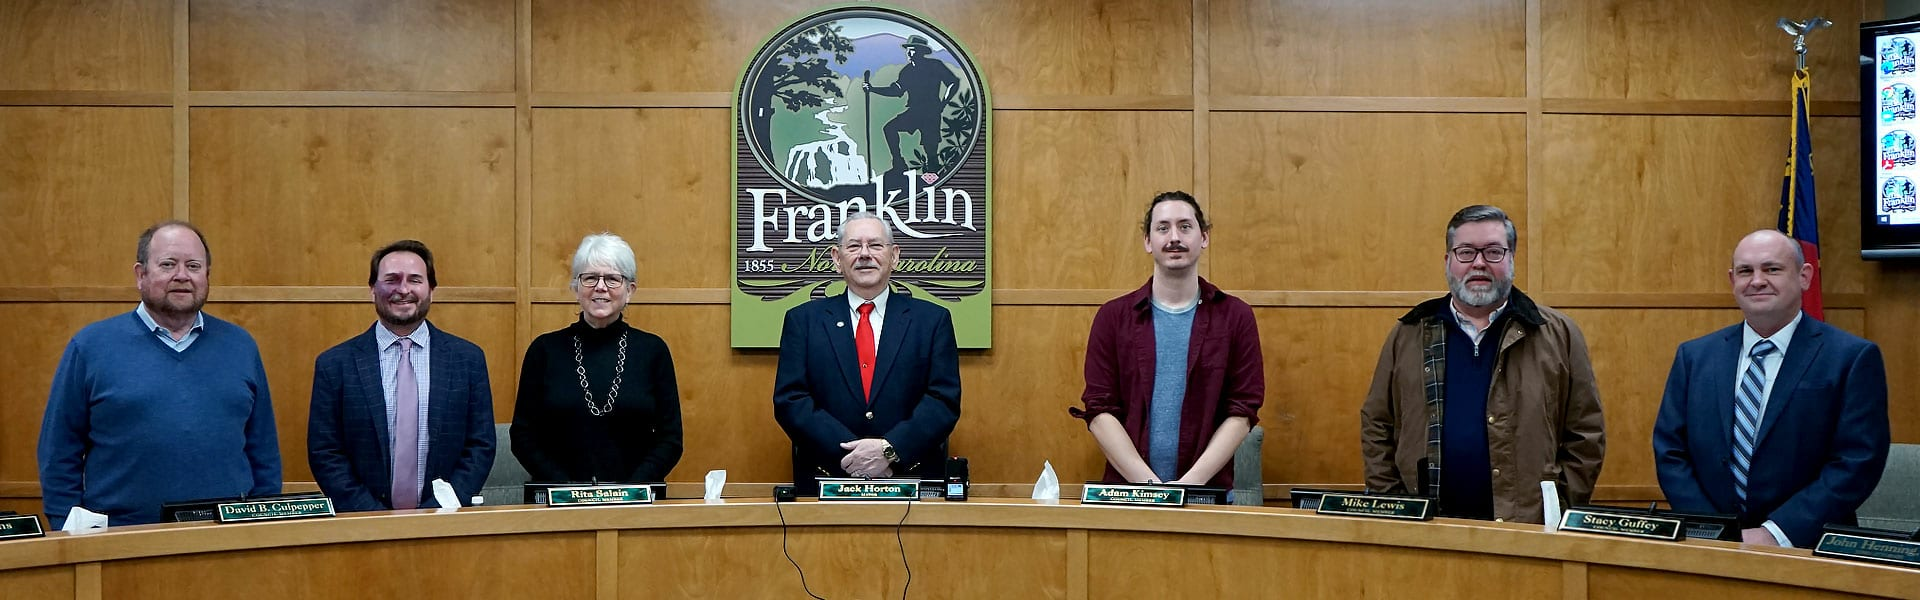 franklin north carolina town council